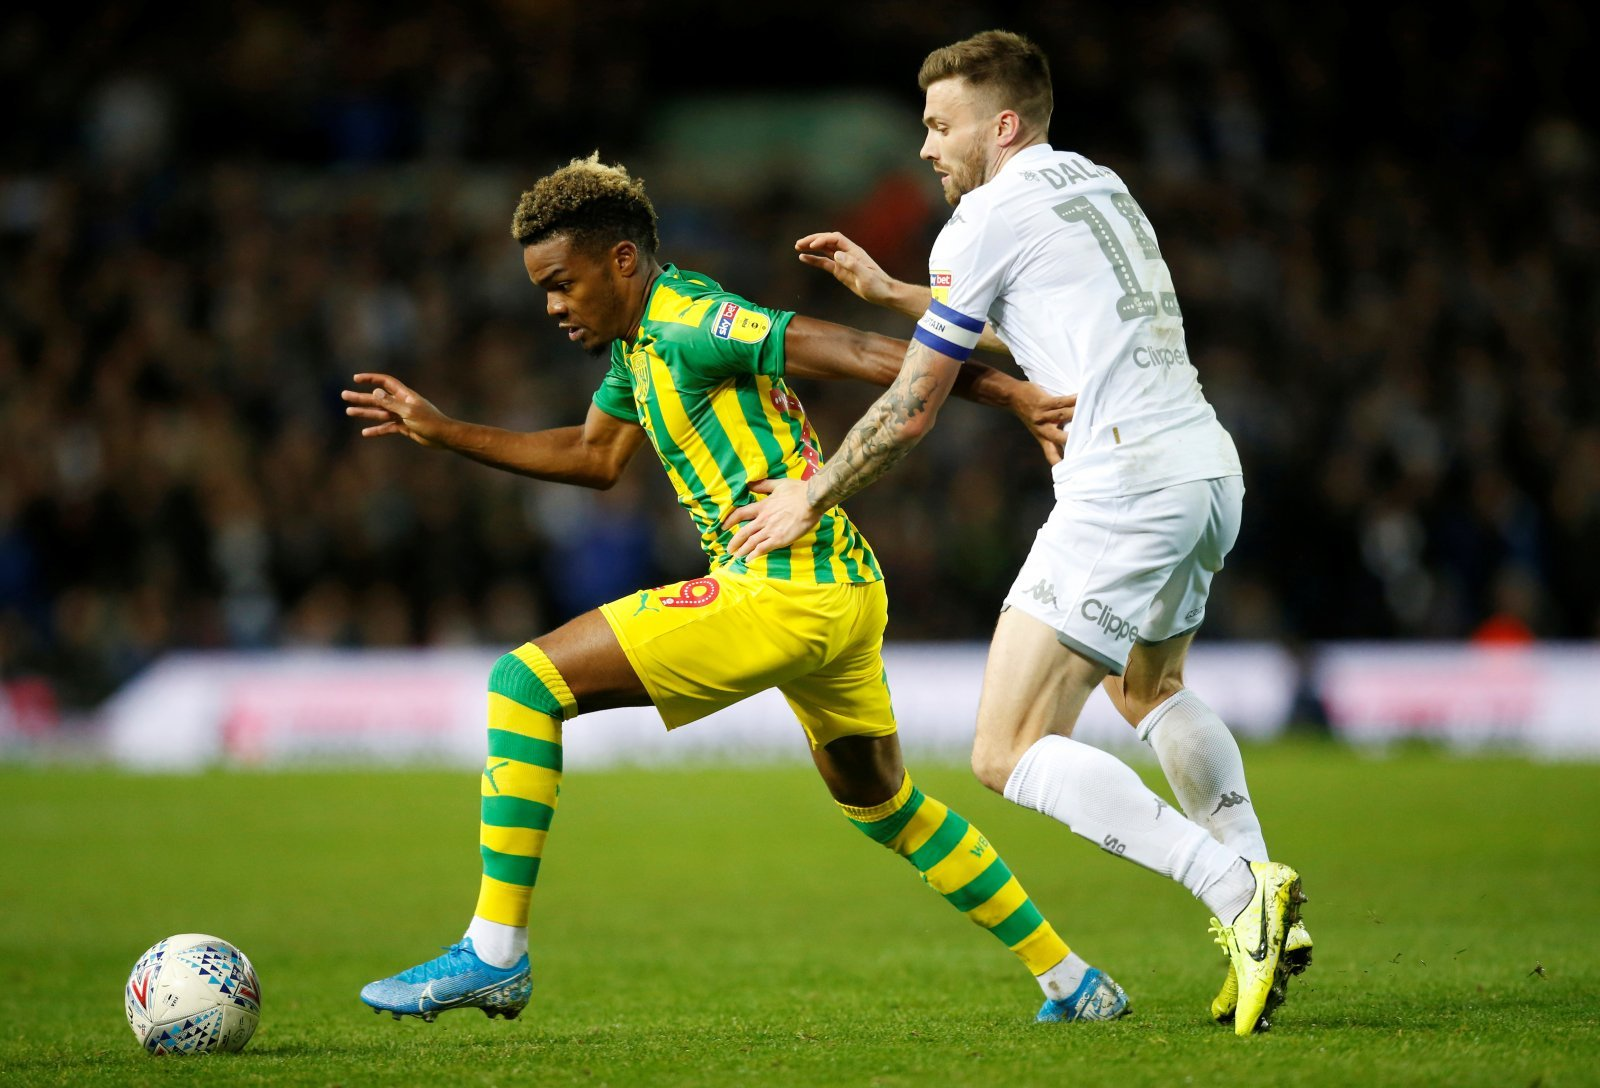 Unsung Hero: West Bromwich Albion's Grady Diangana goes unnoticed as Baggies rescue a point